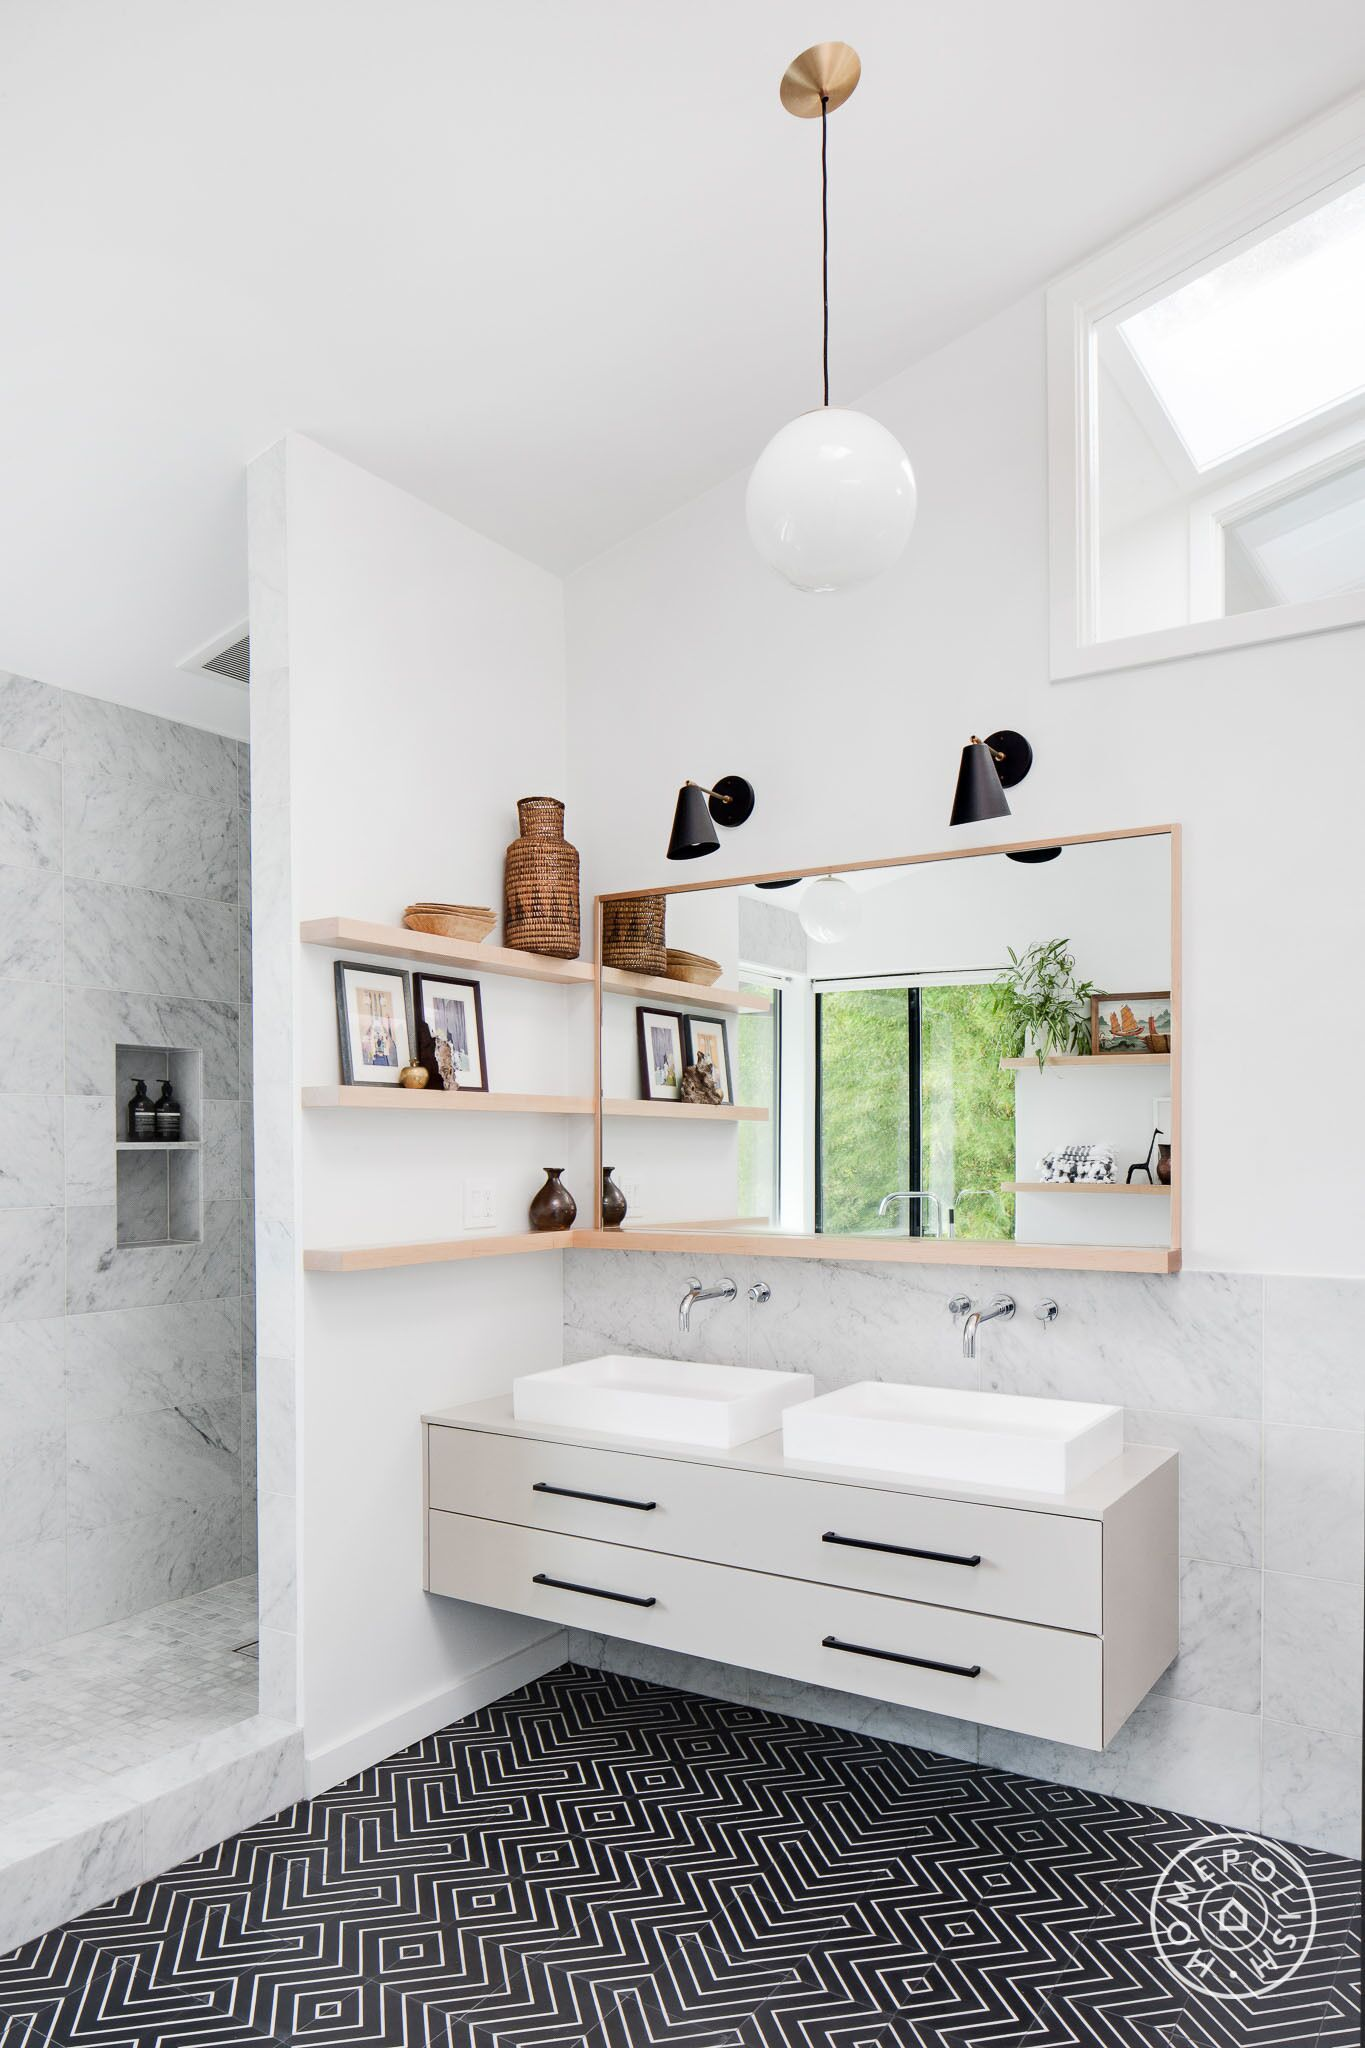 Before And After Three Bold Black And White Bathroom Renovations Homepolish Bathroom Renovations Bathroom Design Styles Home